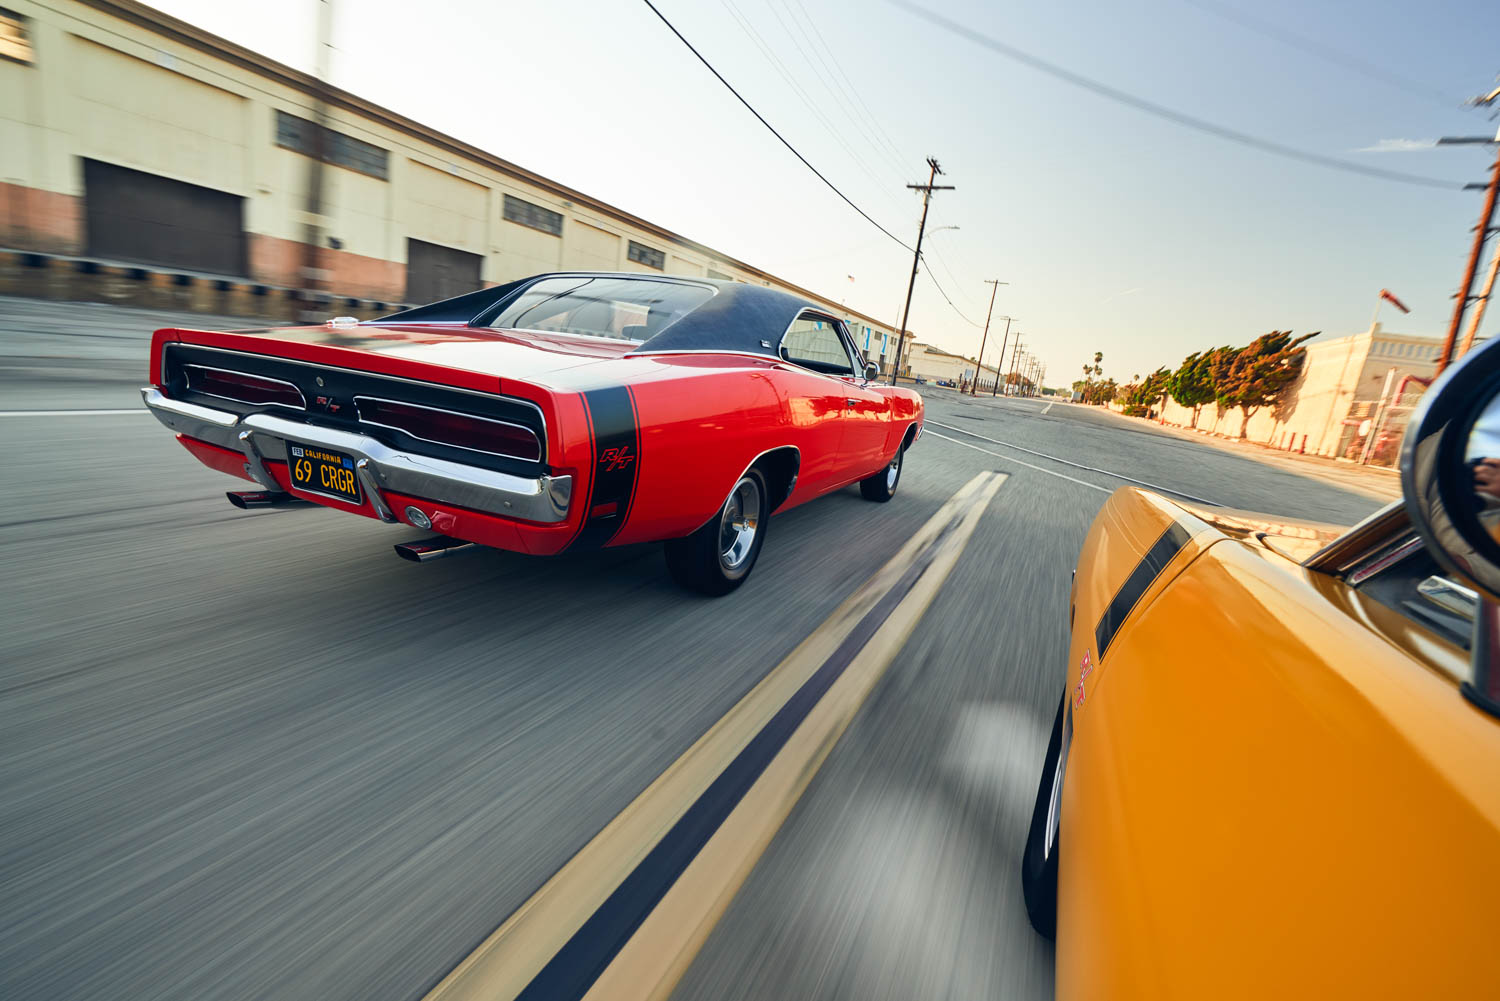 The American Charger became an instant film and television star, starting with Steve McQueen's 1968 cops-and-burnouts thriller, Bullitt. The Aussie Charger appeared in a few local TV shows you've likely never heard of, plus as an extra in various Mad Max films.